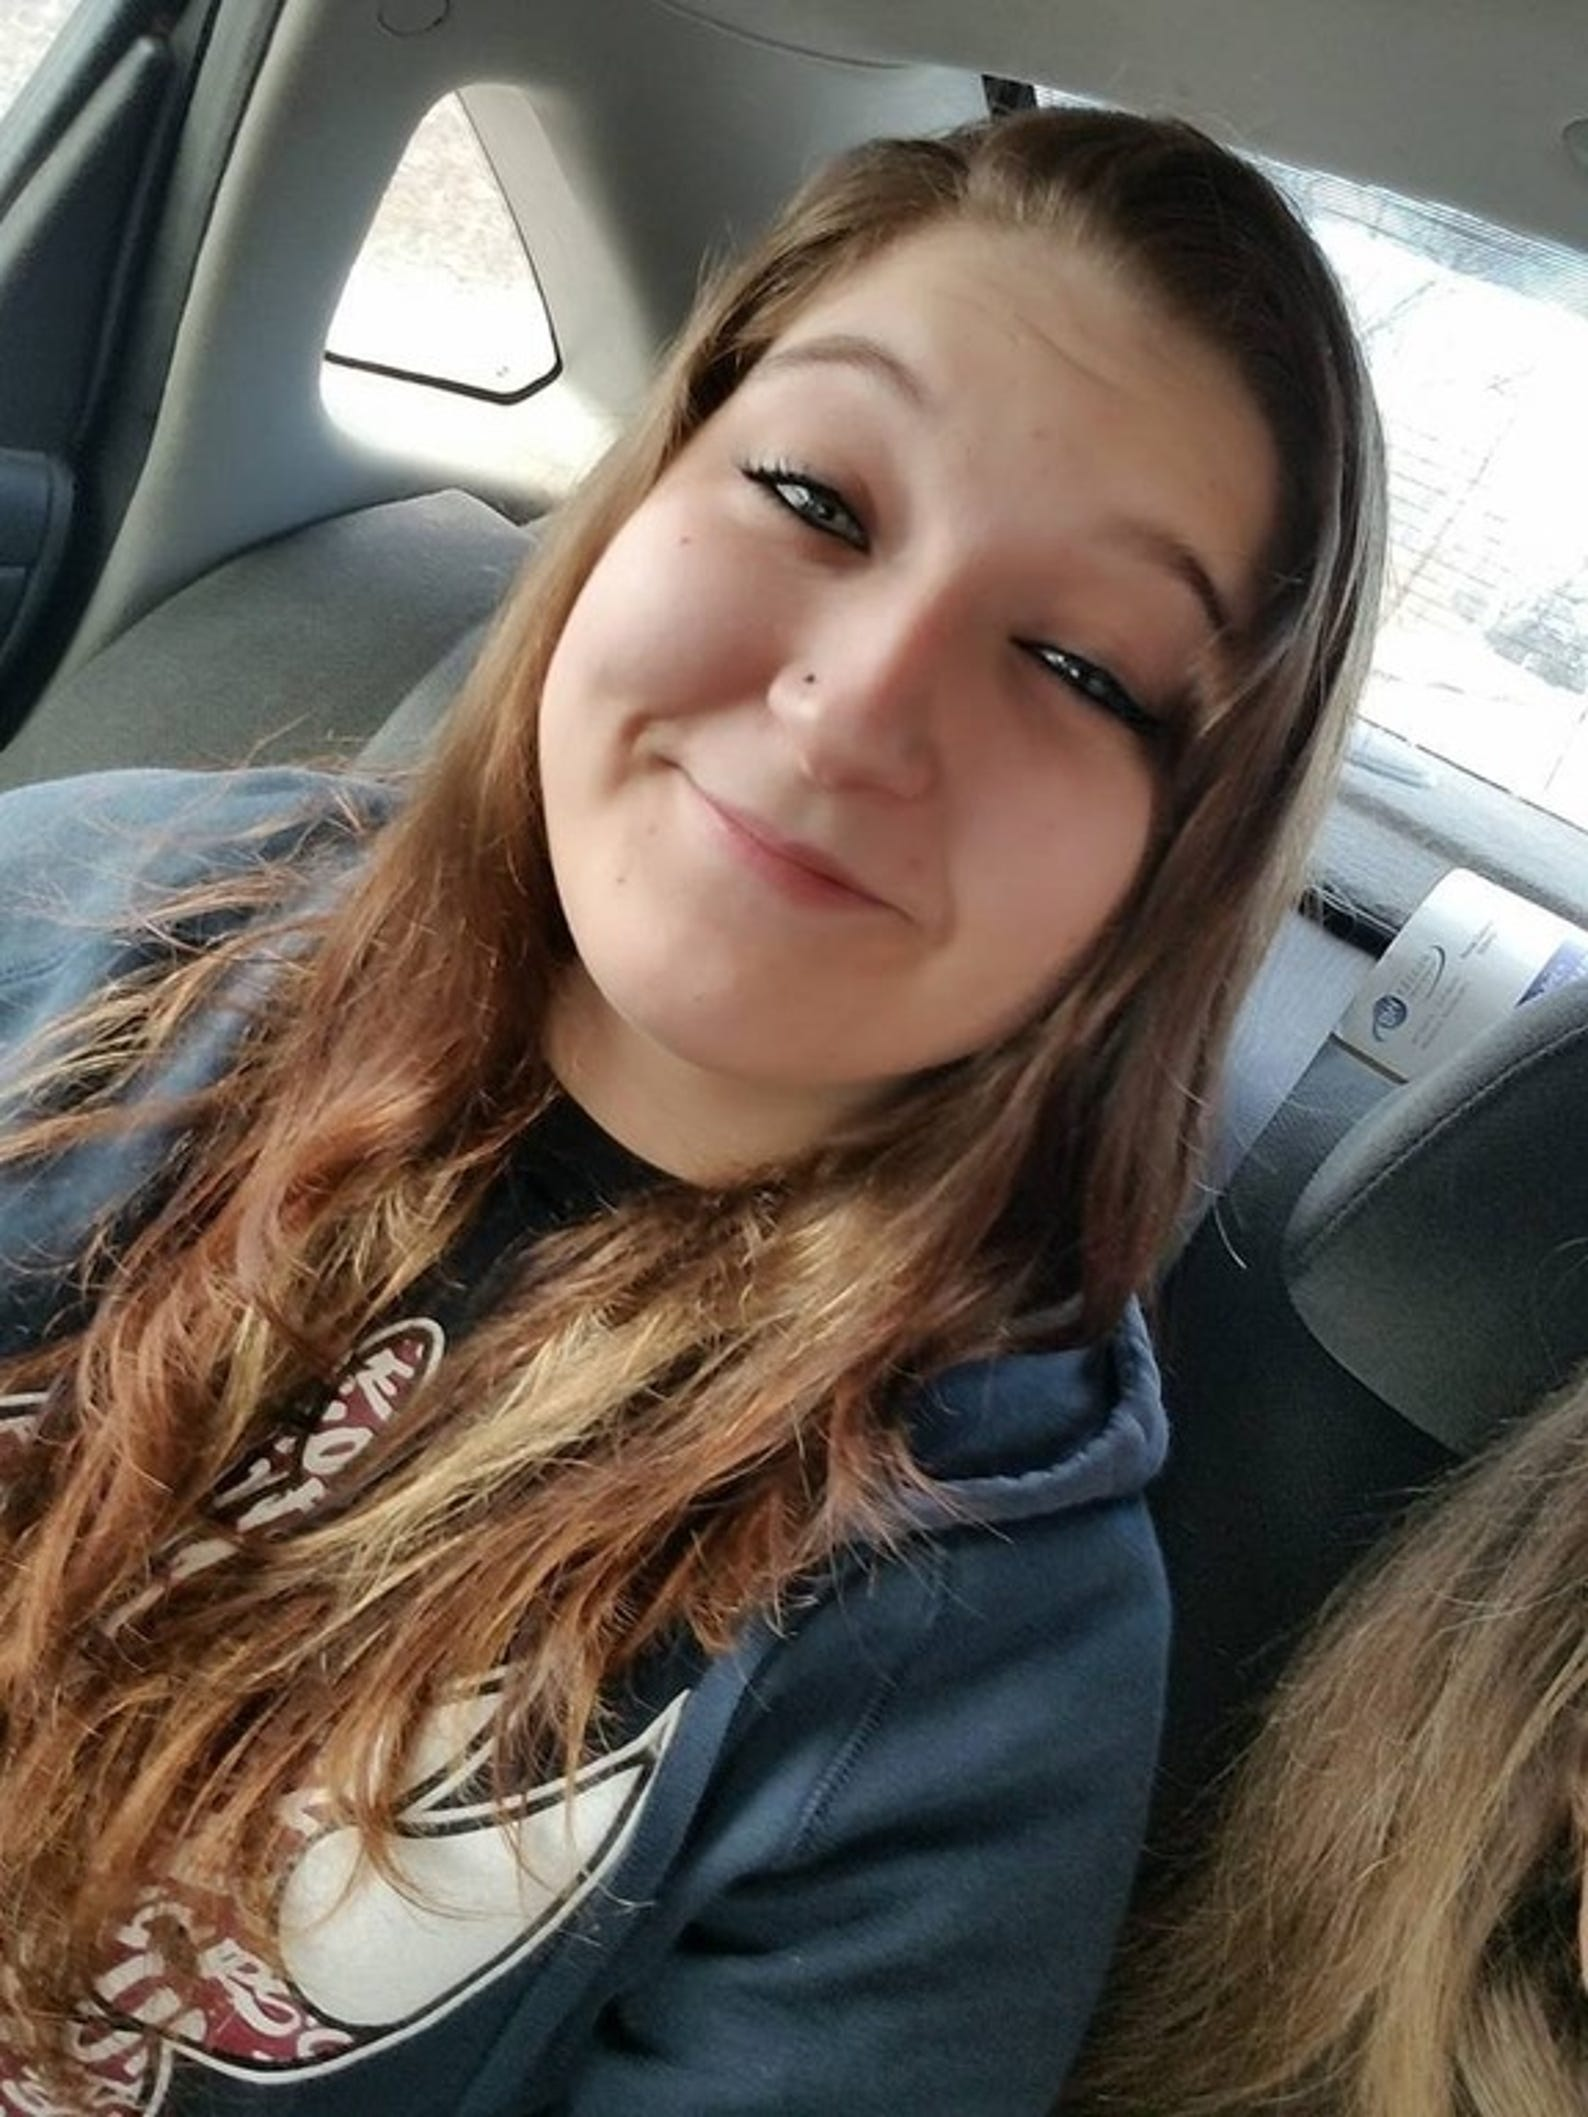 Sunny Sramekwas 18 when she went missing from Trenton, Nebraska, on April 20, 2019.More information and age-progressed photos here.